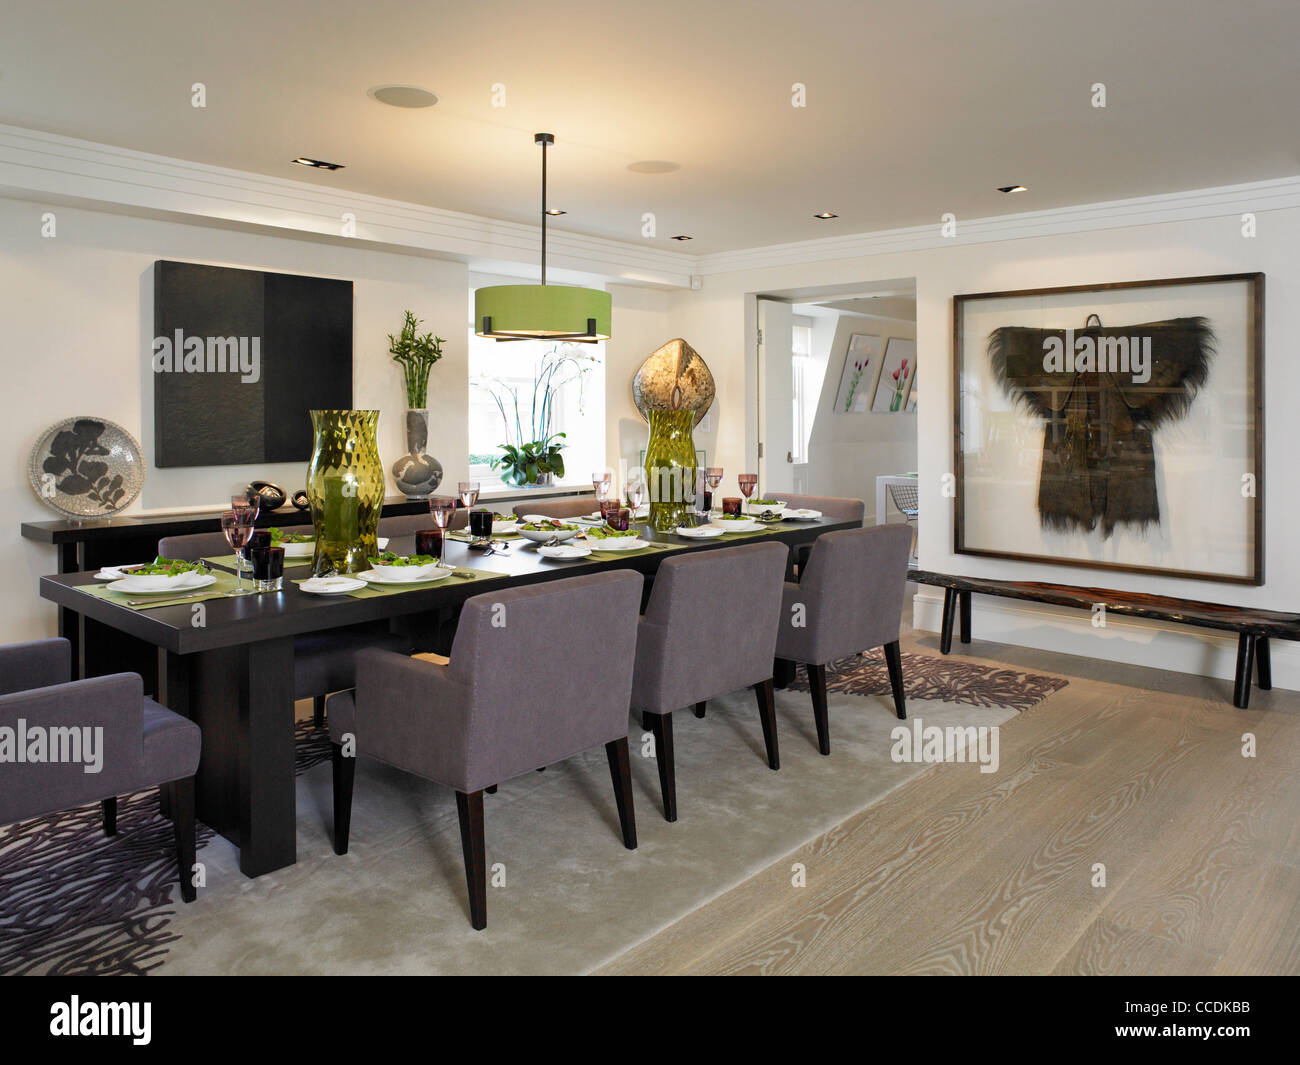 Private Penthouse Apartment In Belgravia London Dining Area And Entrance To Kitchenmid Frame